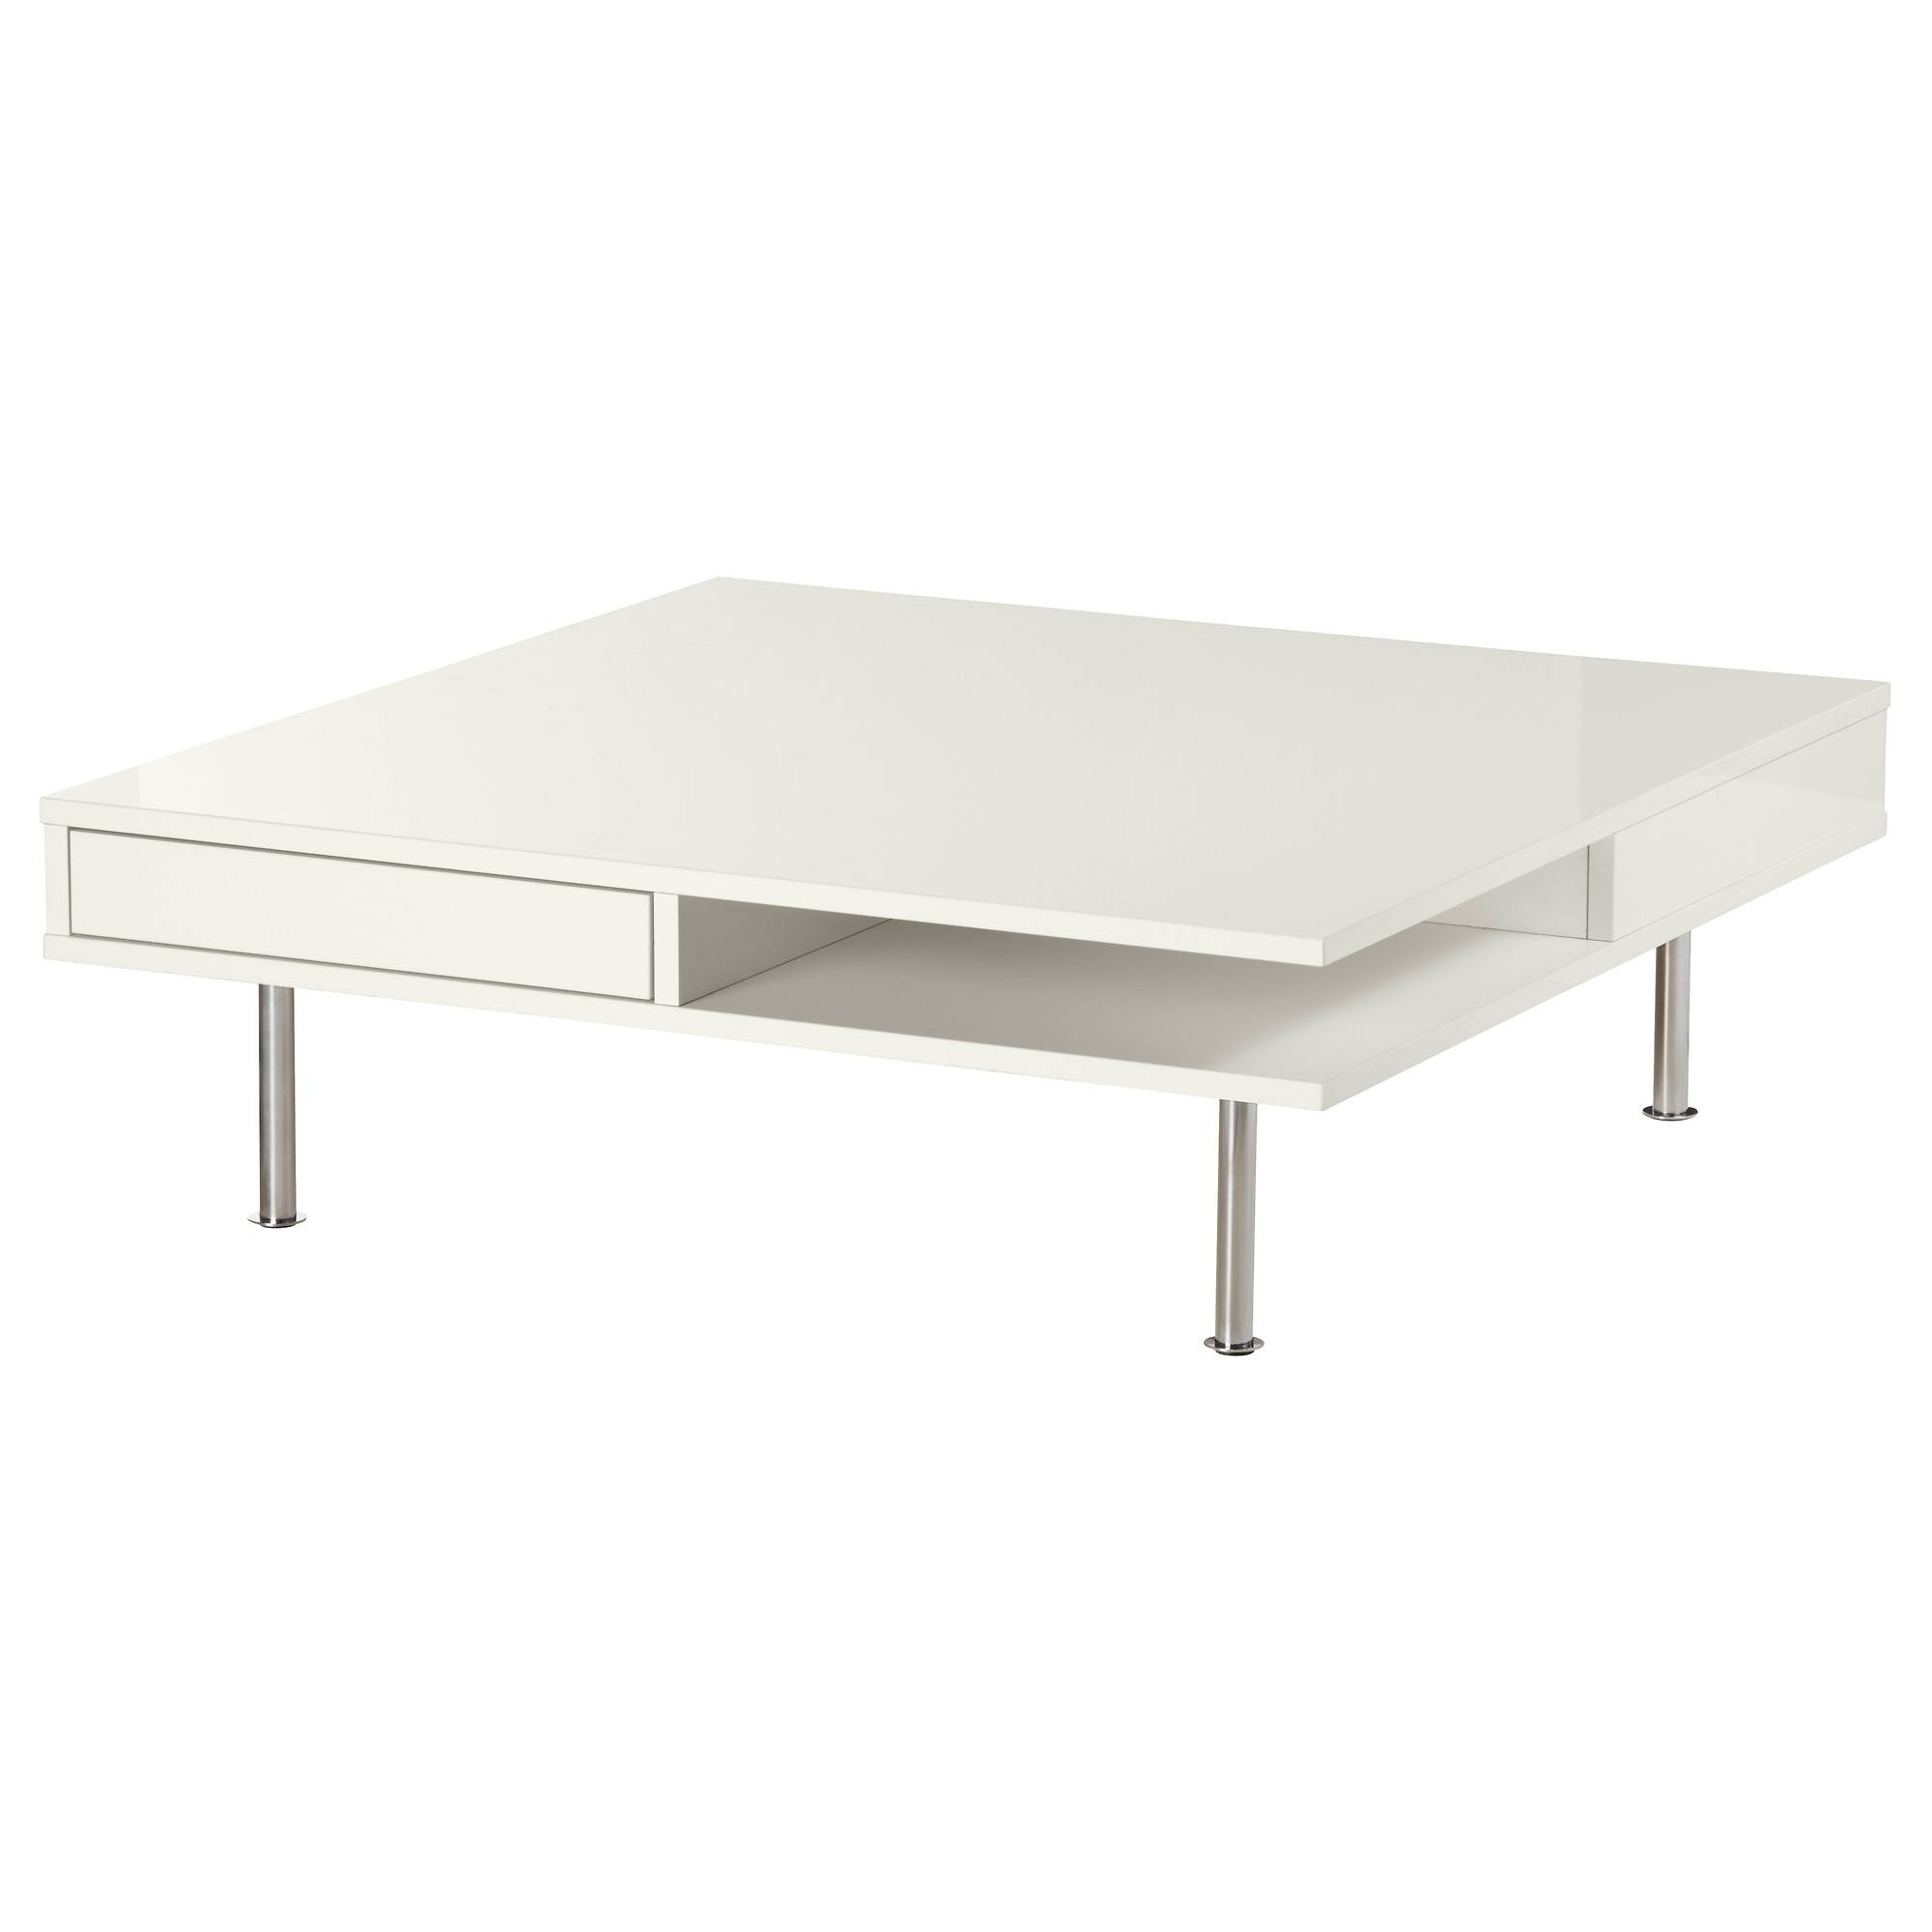 Tofteryd Coffee Table High-Gloss White 95X95 Cm - Ikea with High Gloss Coffee Tables (Image 27 of 30)